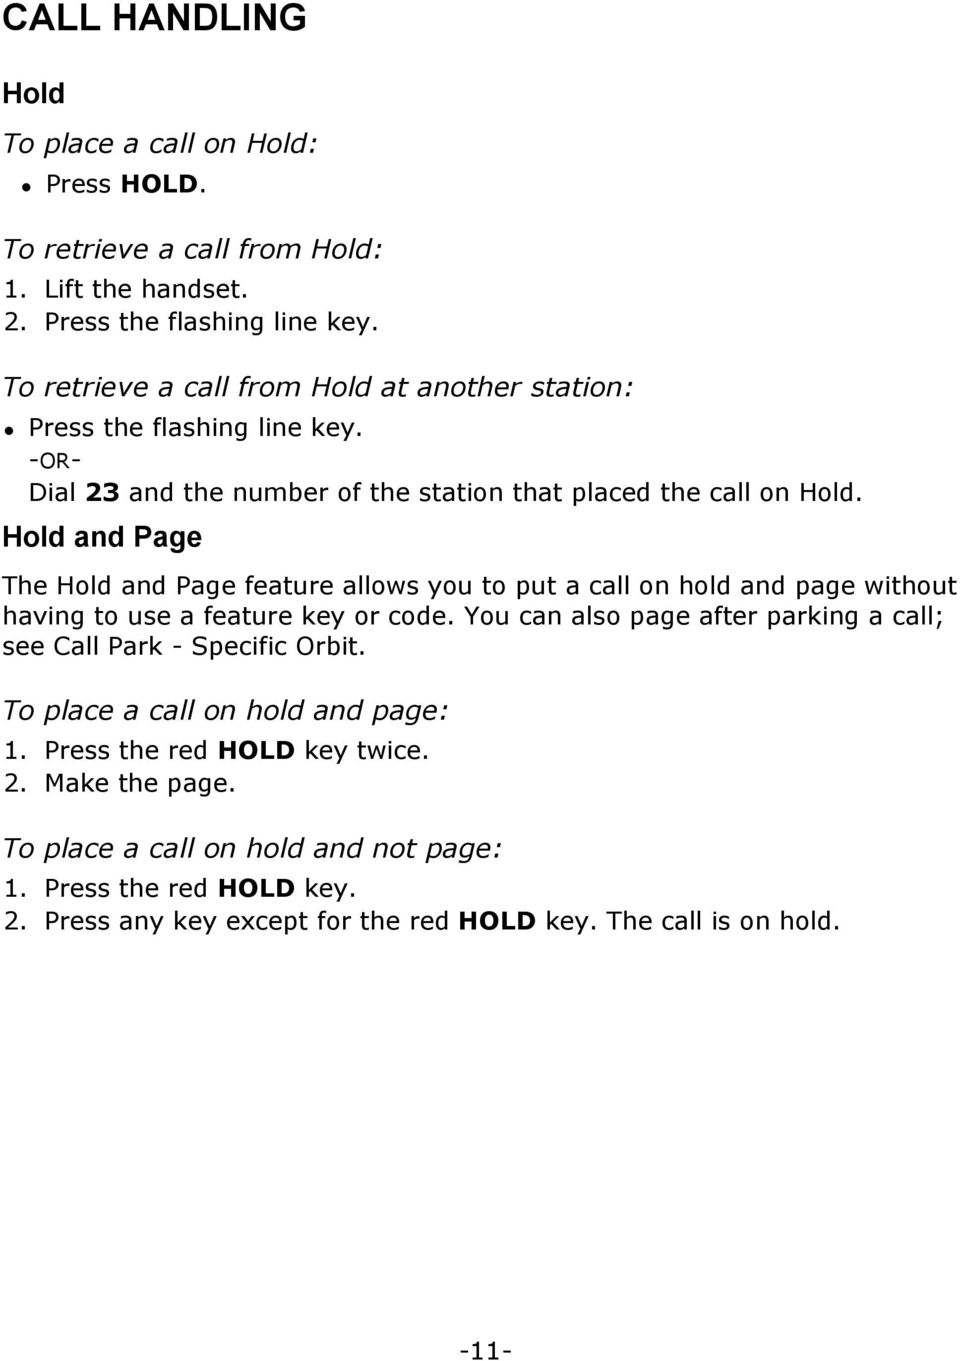 Hold and Page The Hold and Page feature allows you to put a call on hold and page without having to use a feature key or code.